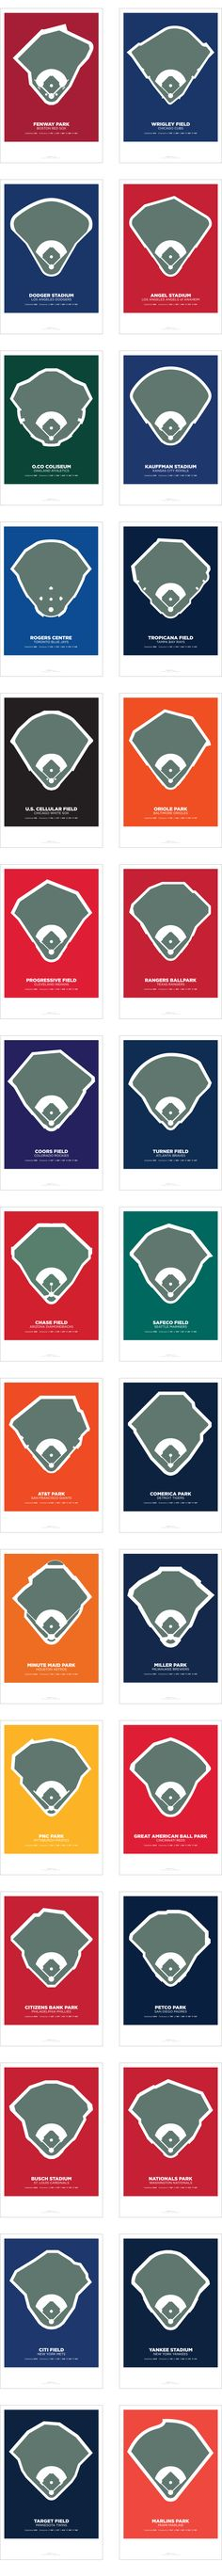 """A 31-print lithograph series featuring """"A Century of Ballparks""""."""